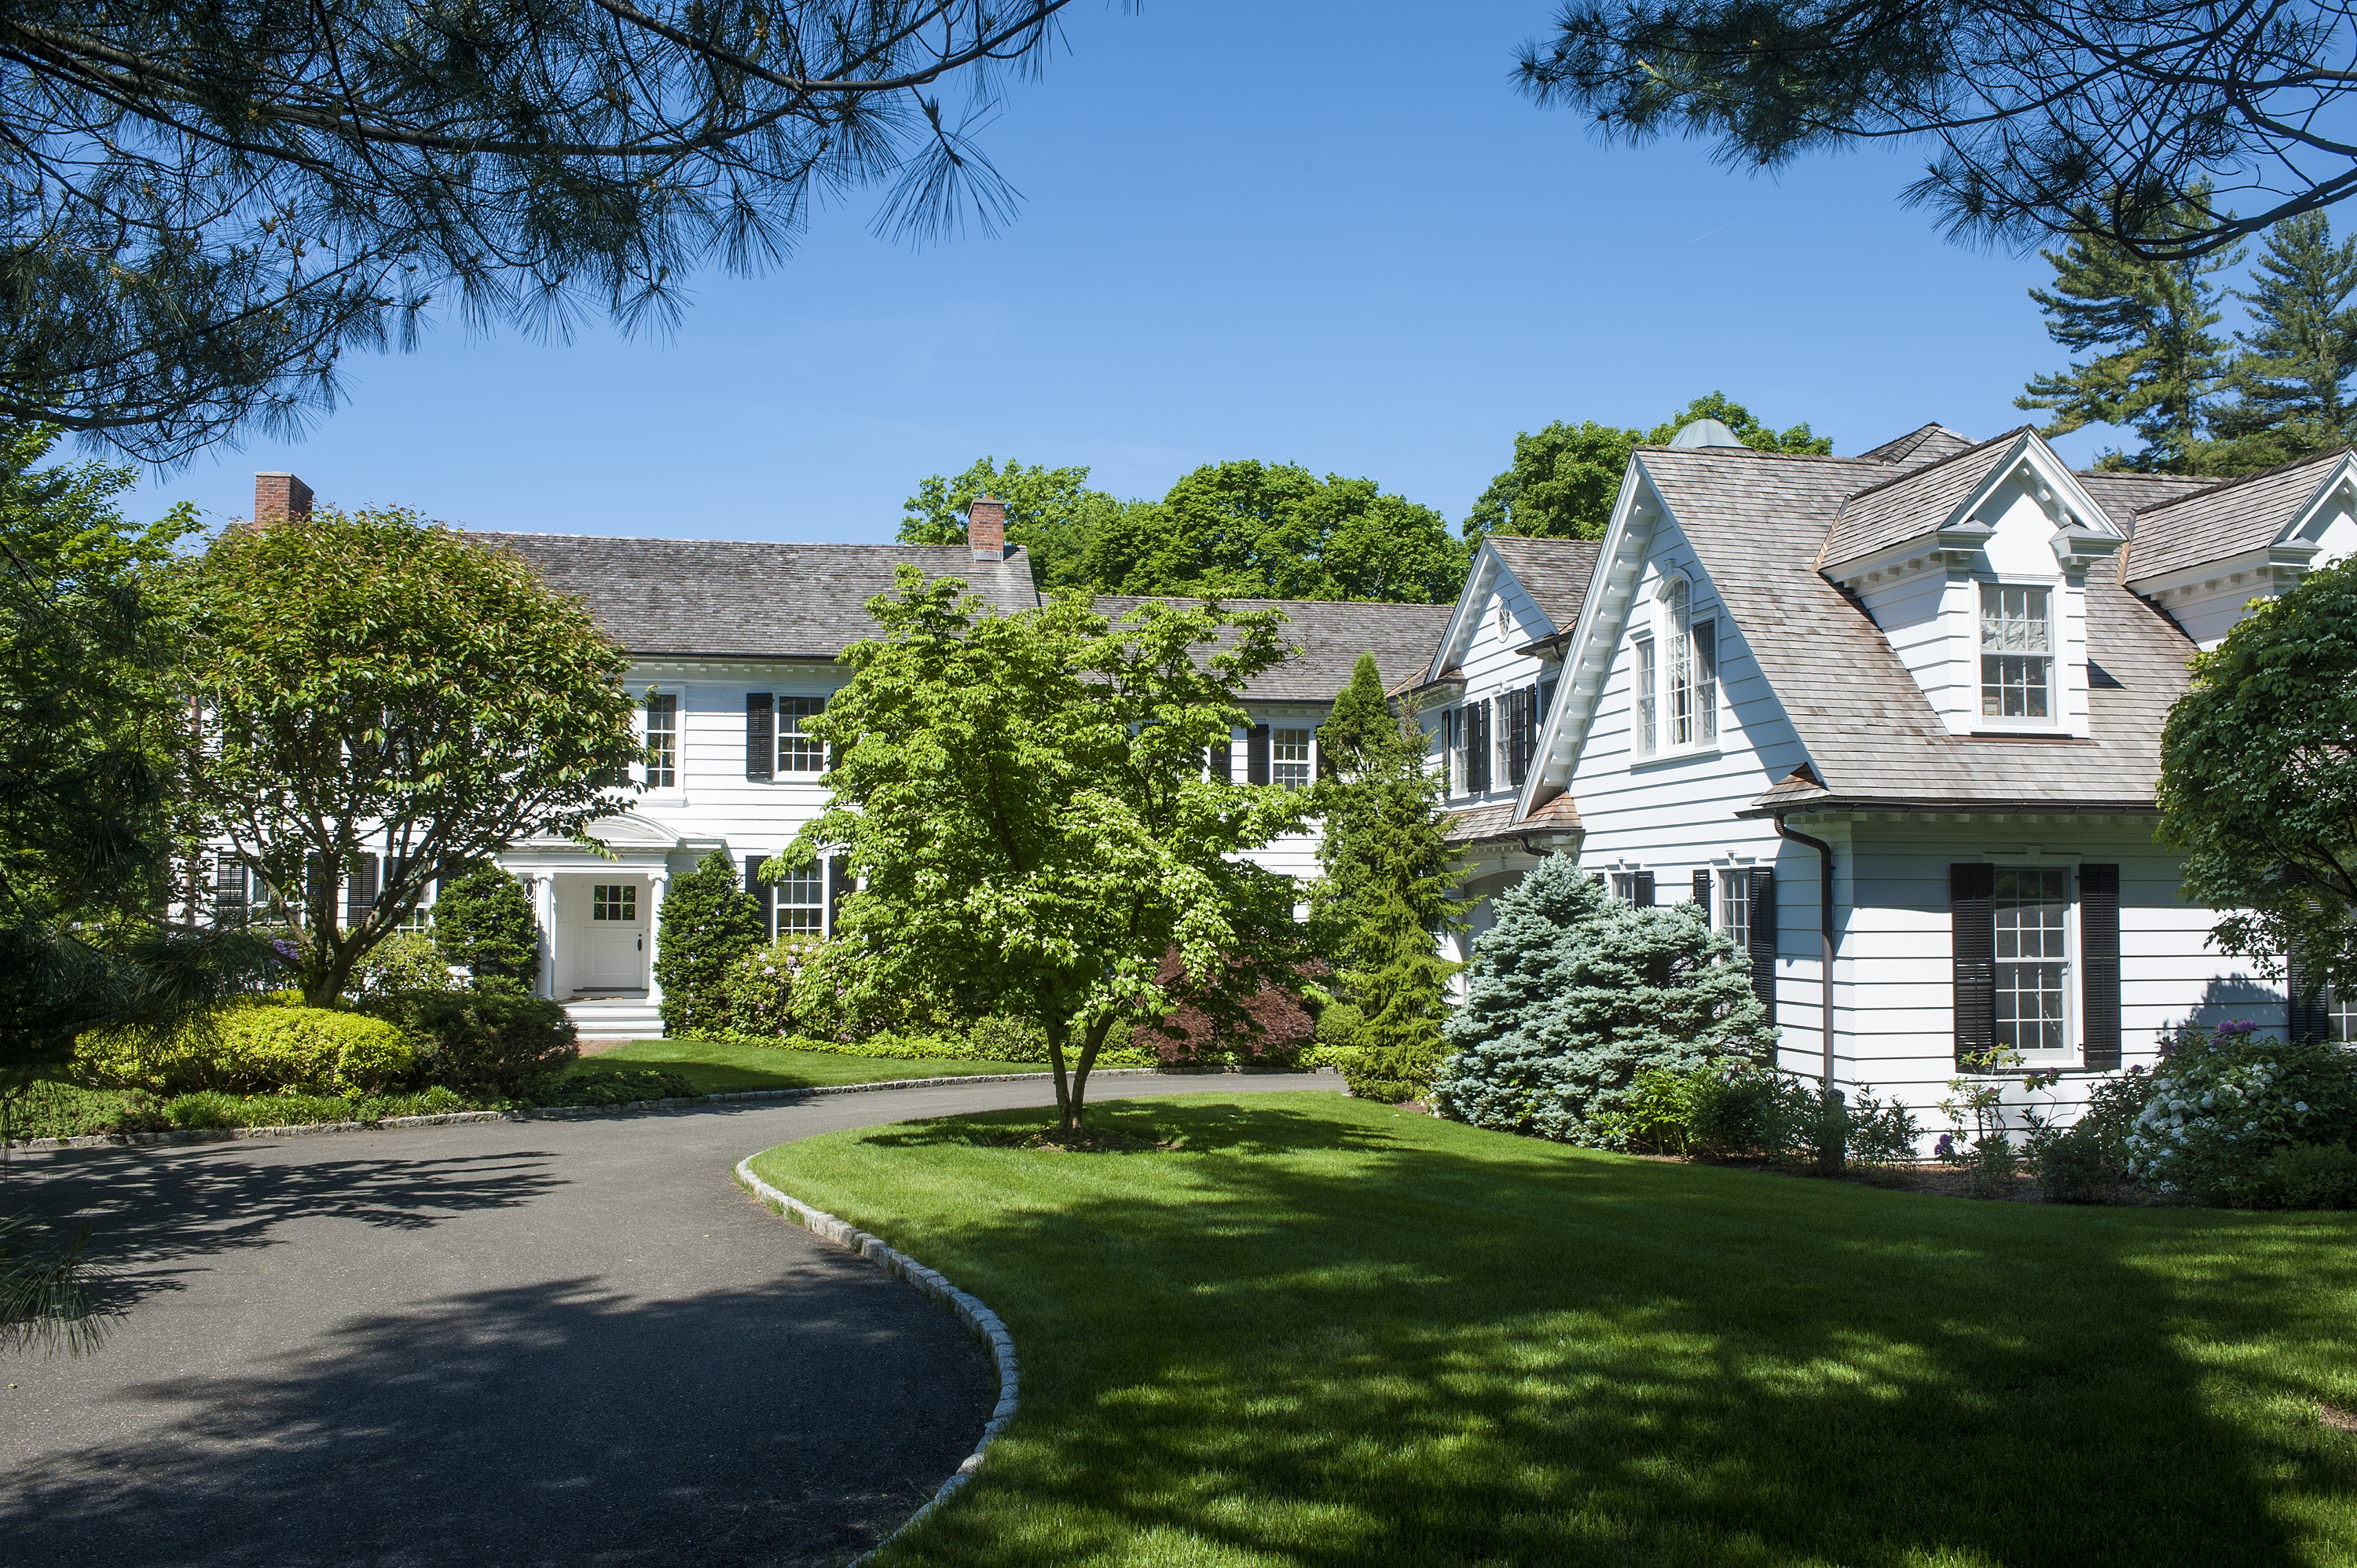 Single Family Home for Sale at Landmark New Canaan Estate 648 Smith Ridge Road New Canaan, Connecticut 06840 United States